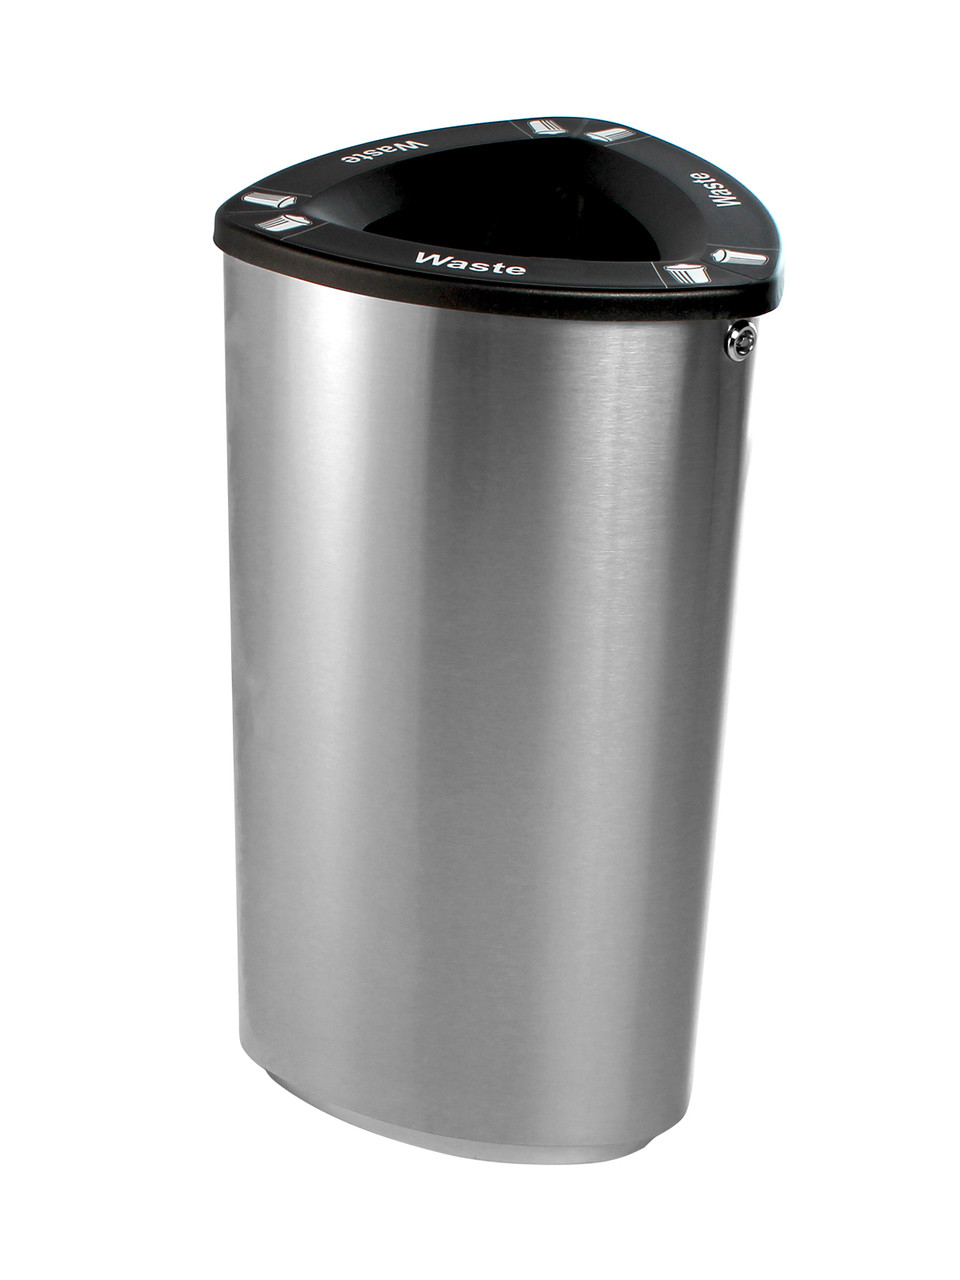 Stainless Steel Recycling Bins 21 Gallon Boka Stainless Steel Trash Can Or Recycling Bin Boka Ss